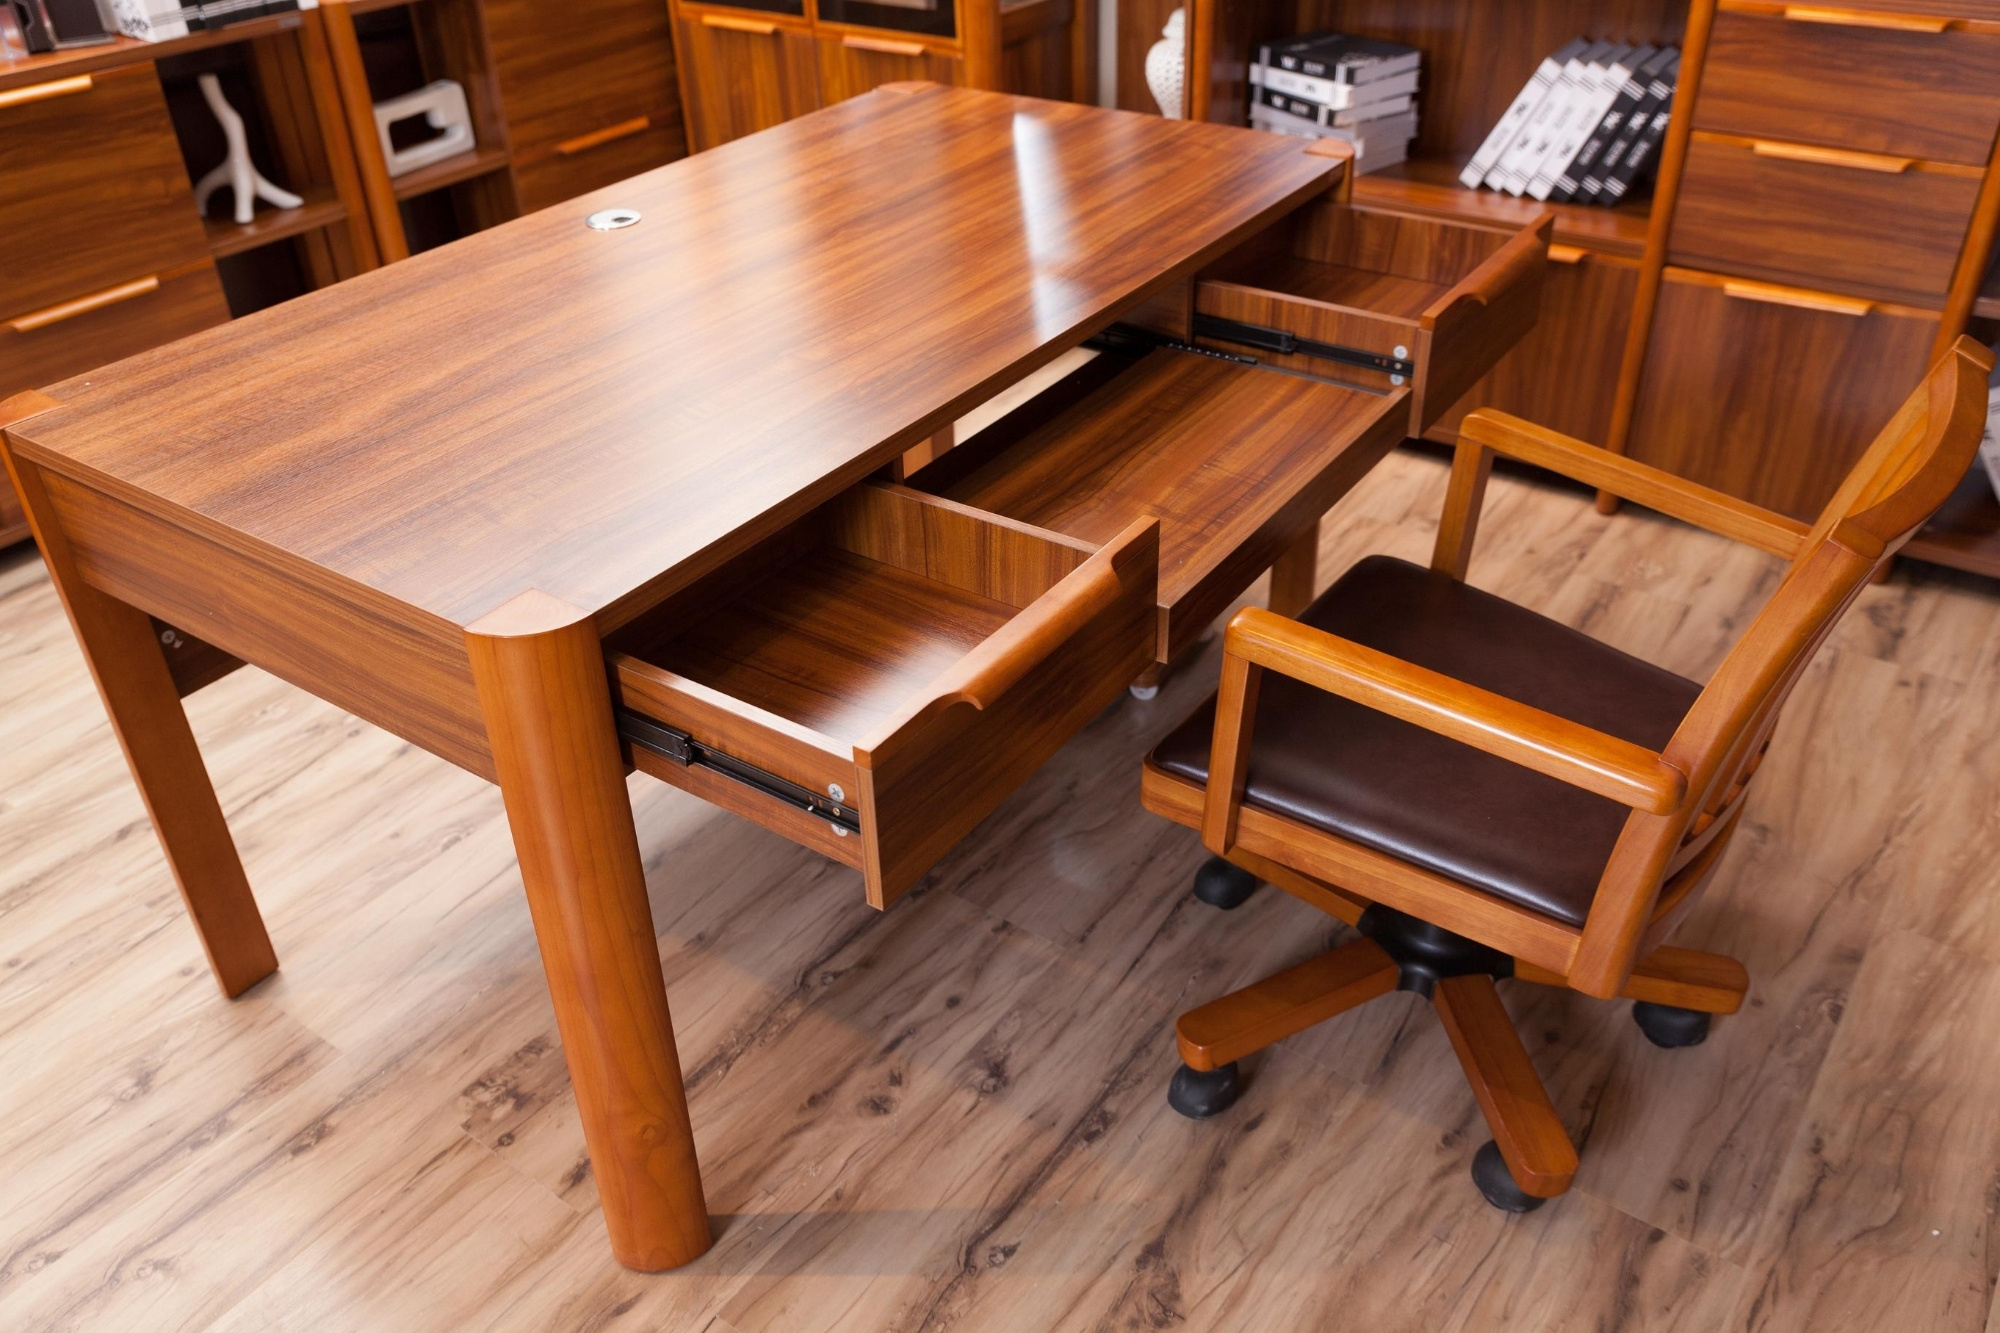 Get Down to Business with Solid Wood Furniture